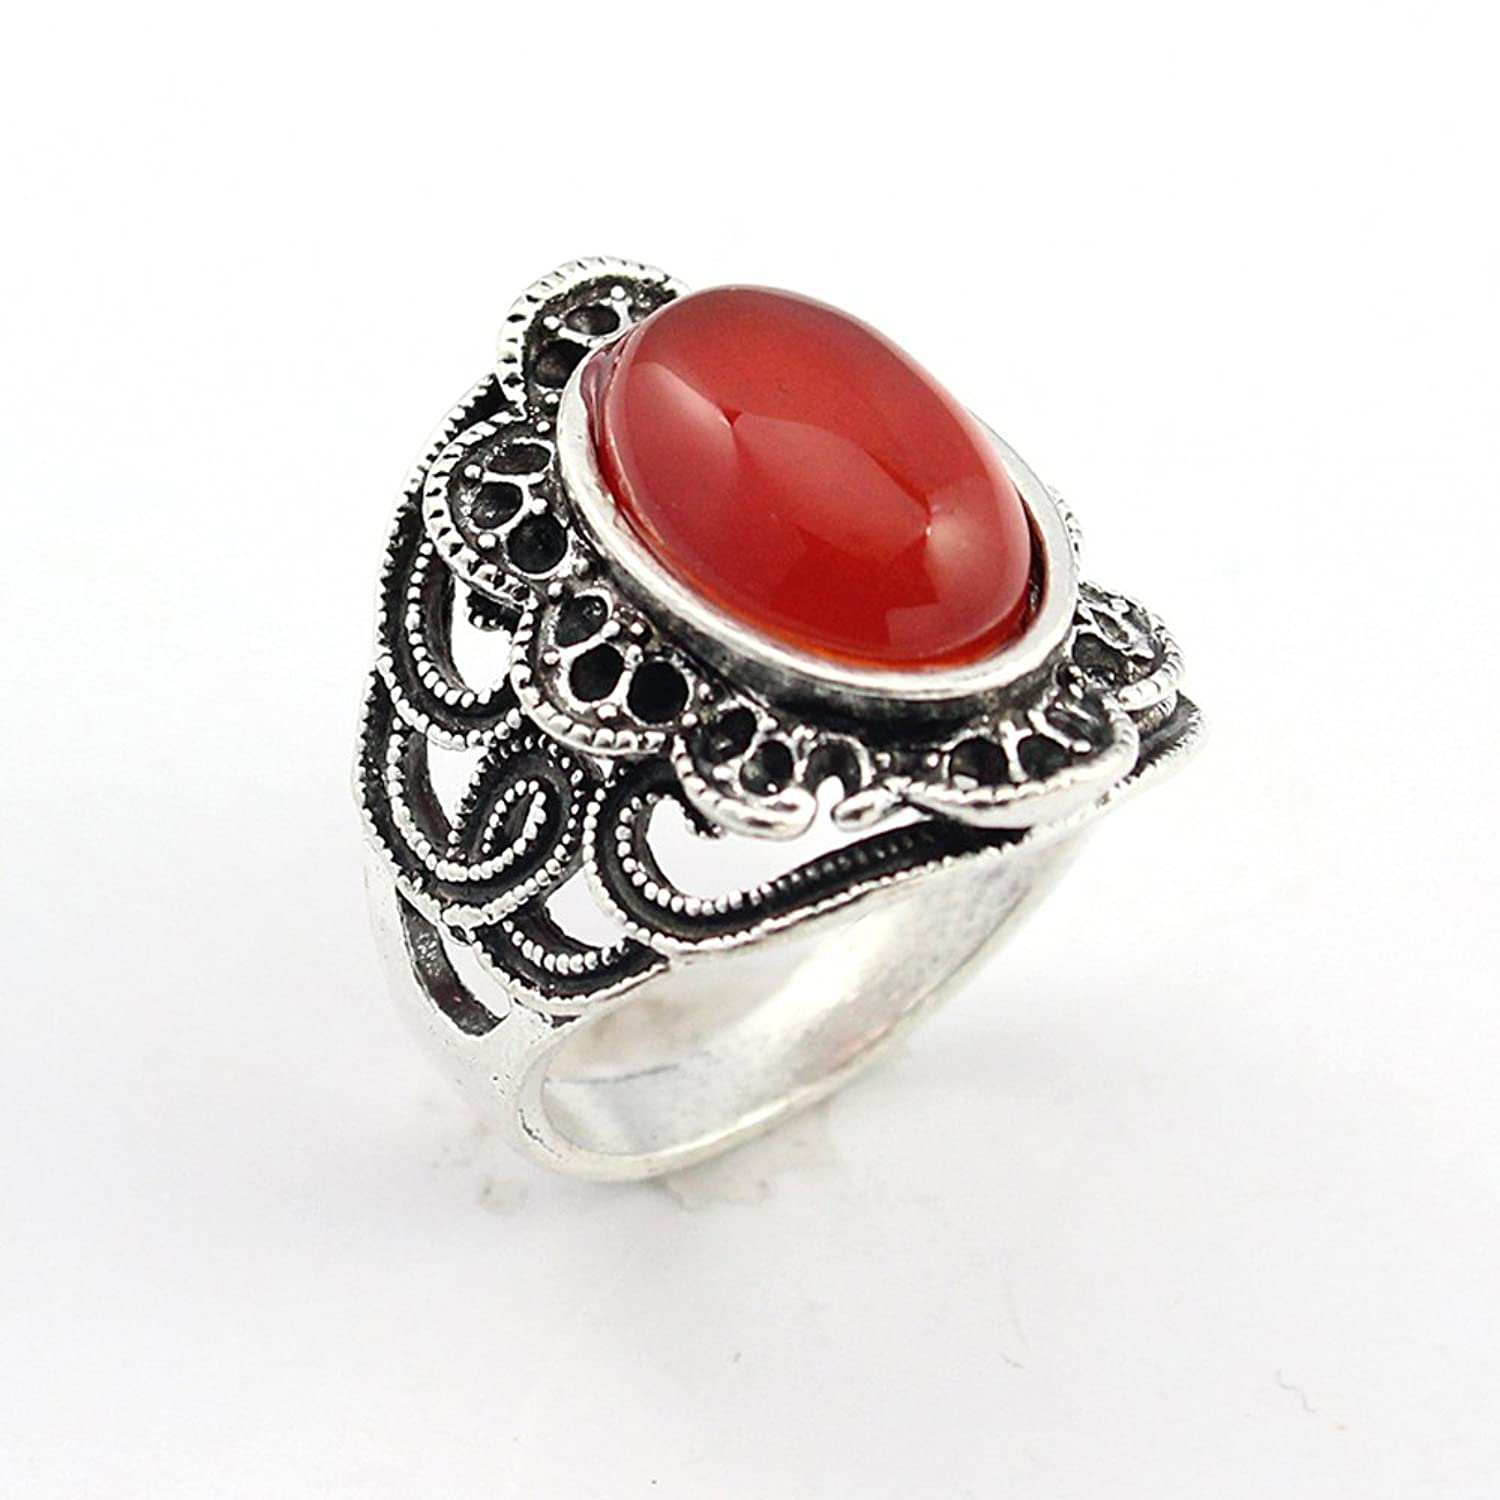 BEST QUALITY CARNELLIAN FASHION JEWELRY .925 SILVER PLATED RING 11 S22708